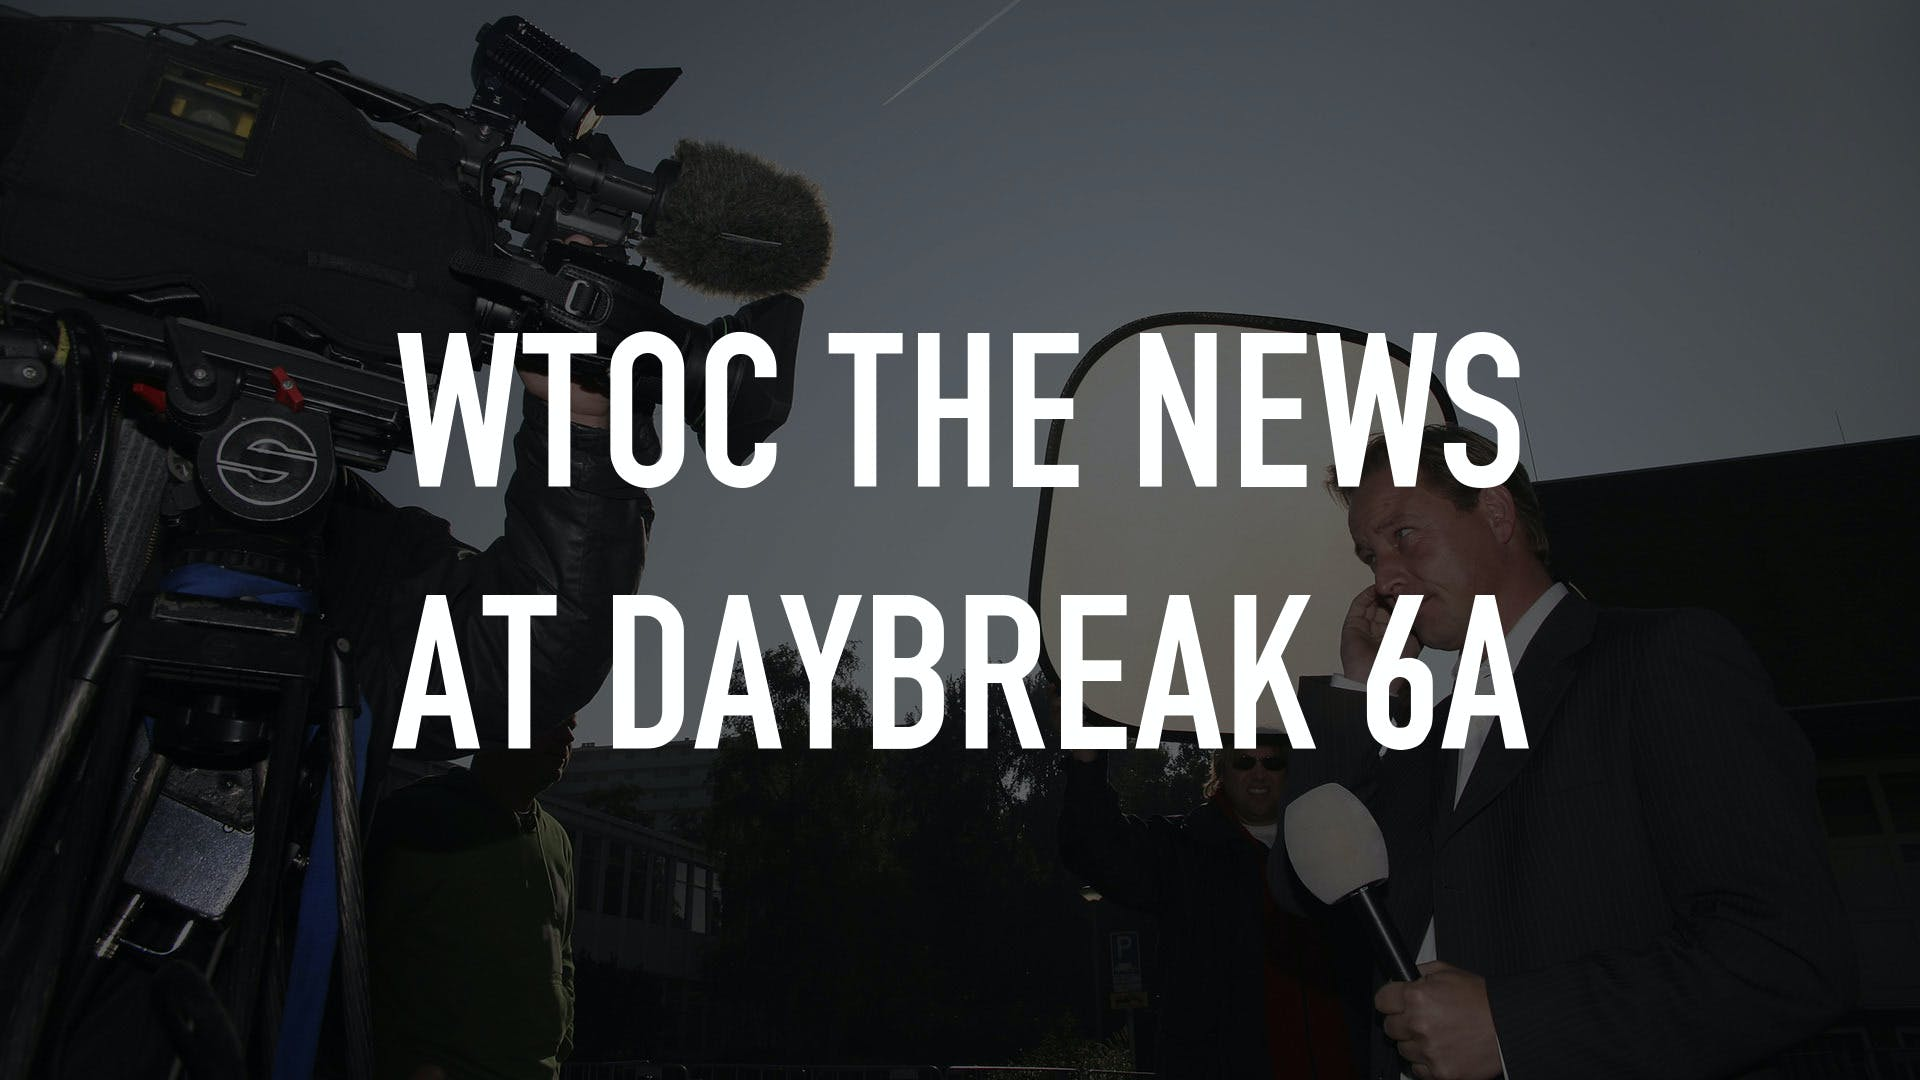 Watch WTOC THE News at Daybreak 6A | Stream on fuboTV (Free Trial)